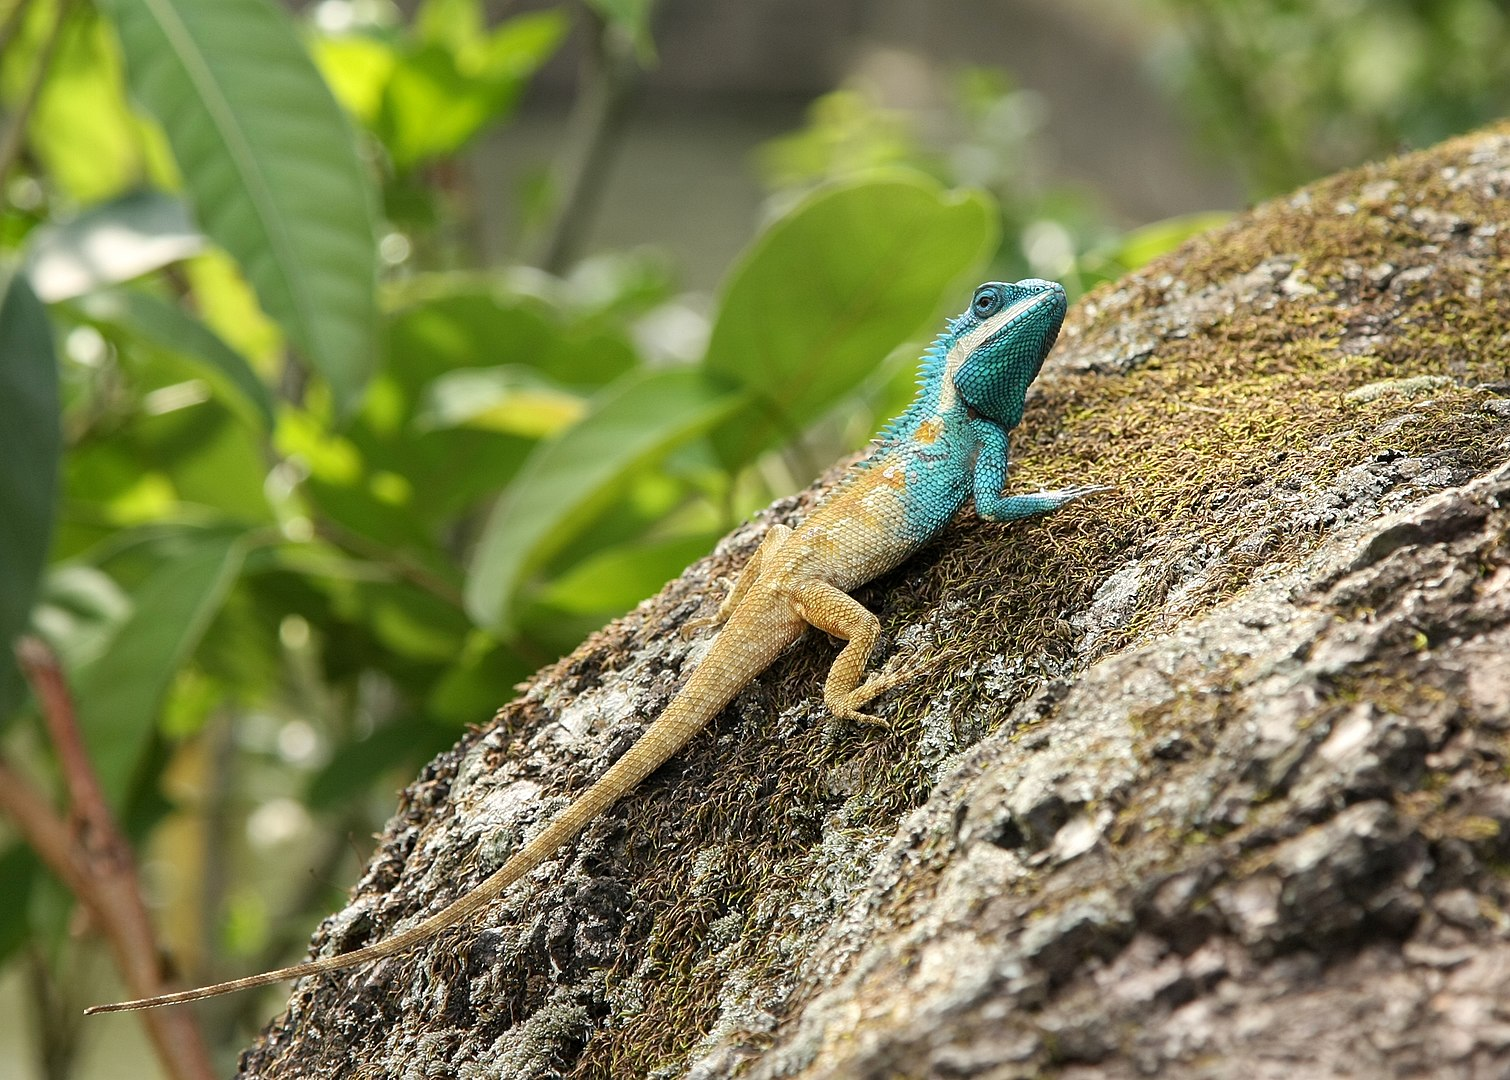 Image of a Blue Crested Lizard